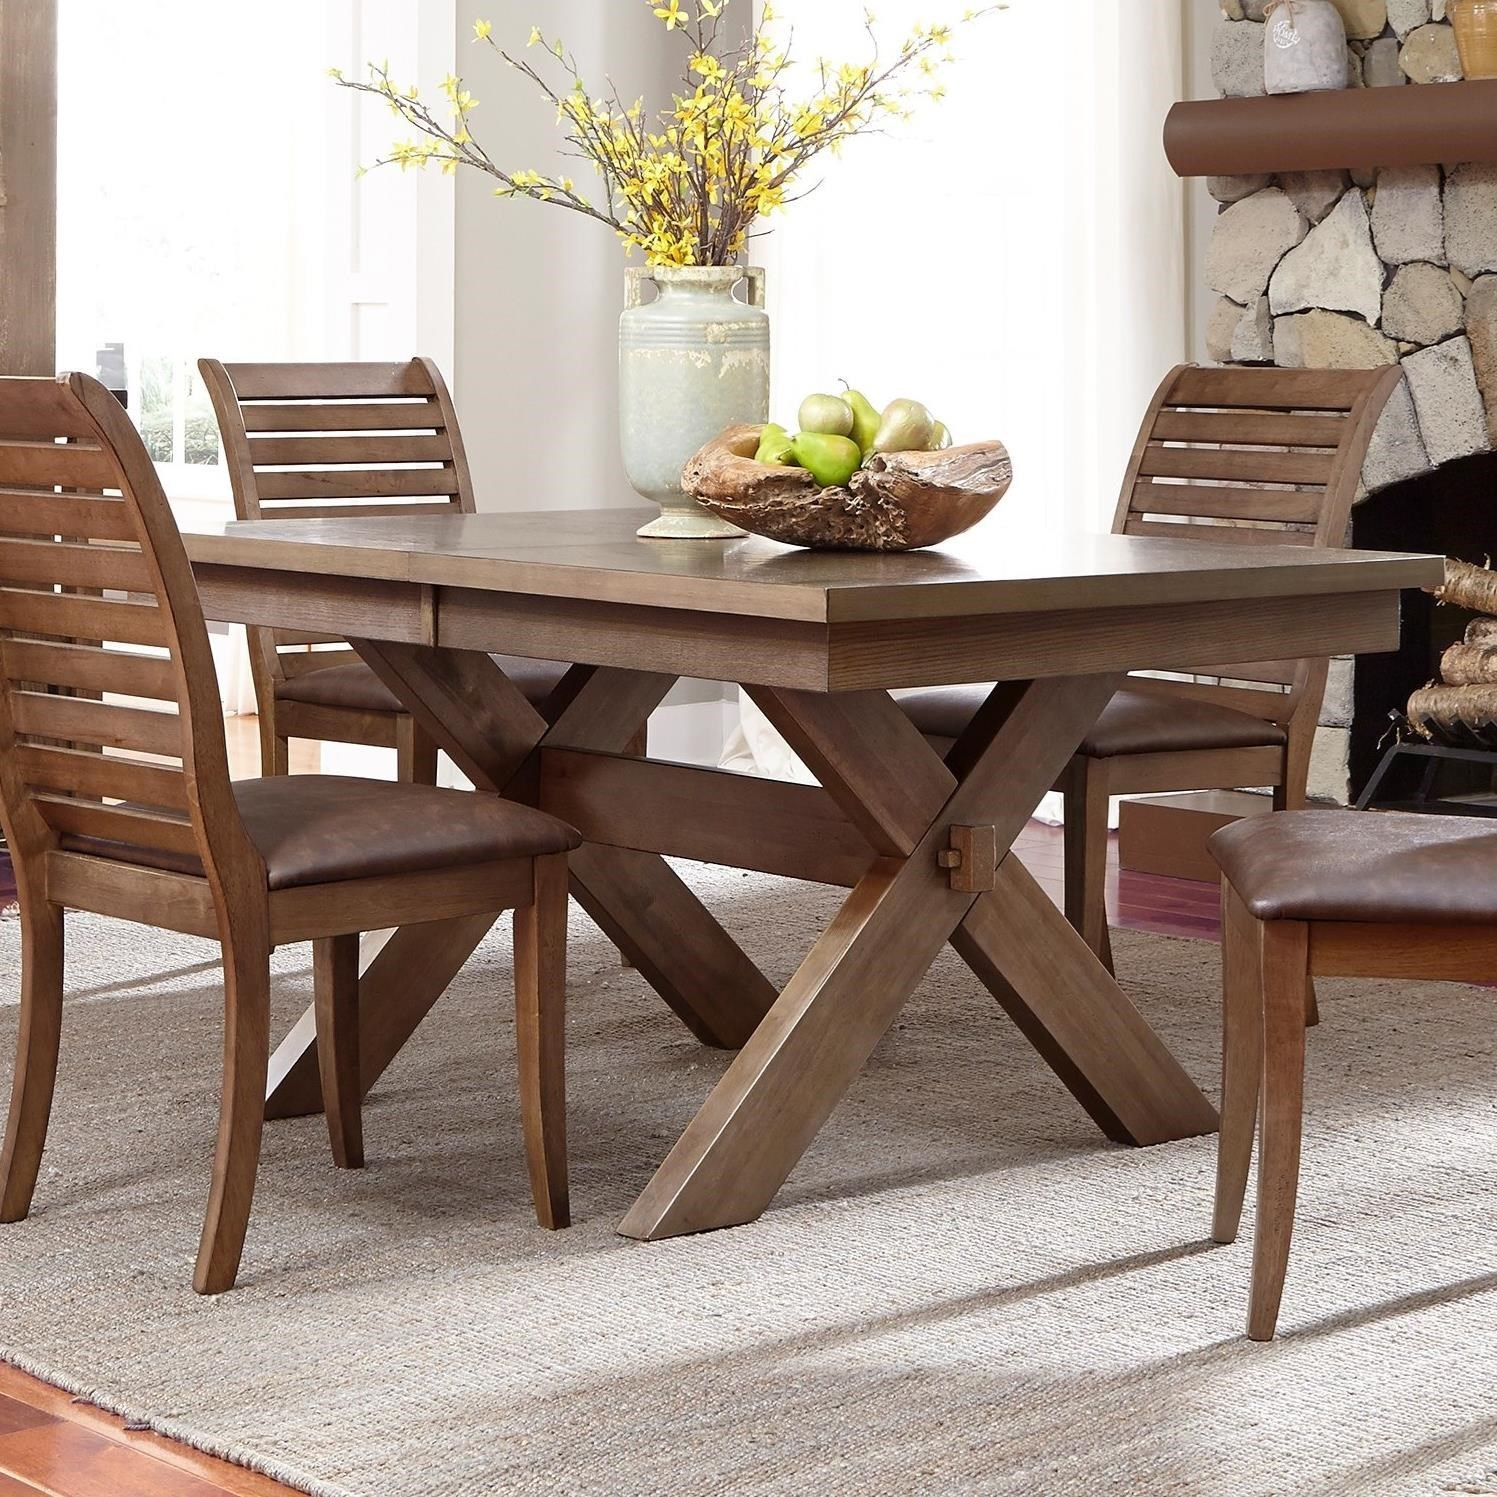 Liberty Furniture Bayside Trestle Dining Table With Butterfly Leaf   H.L.  Stephens   Dining Tables